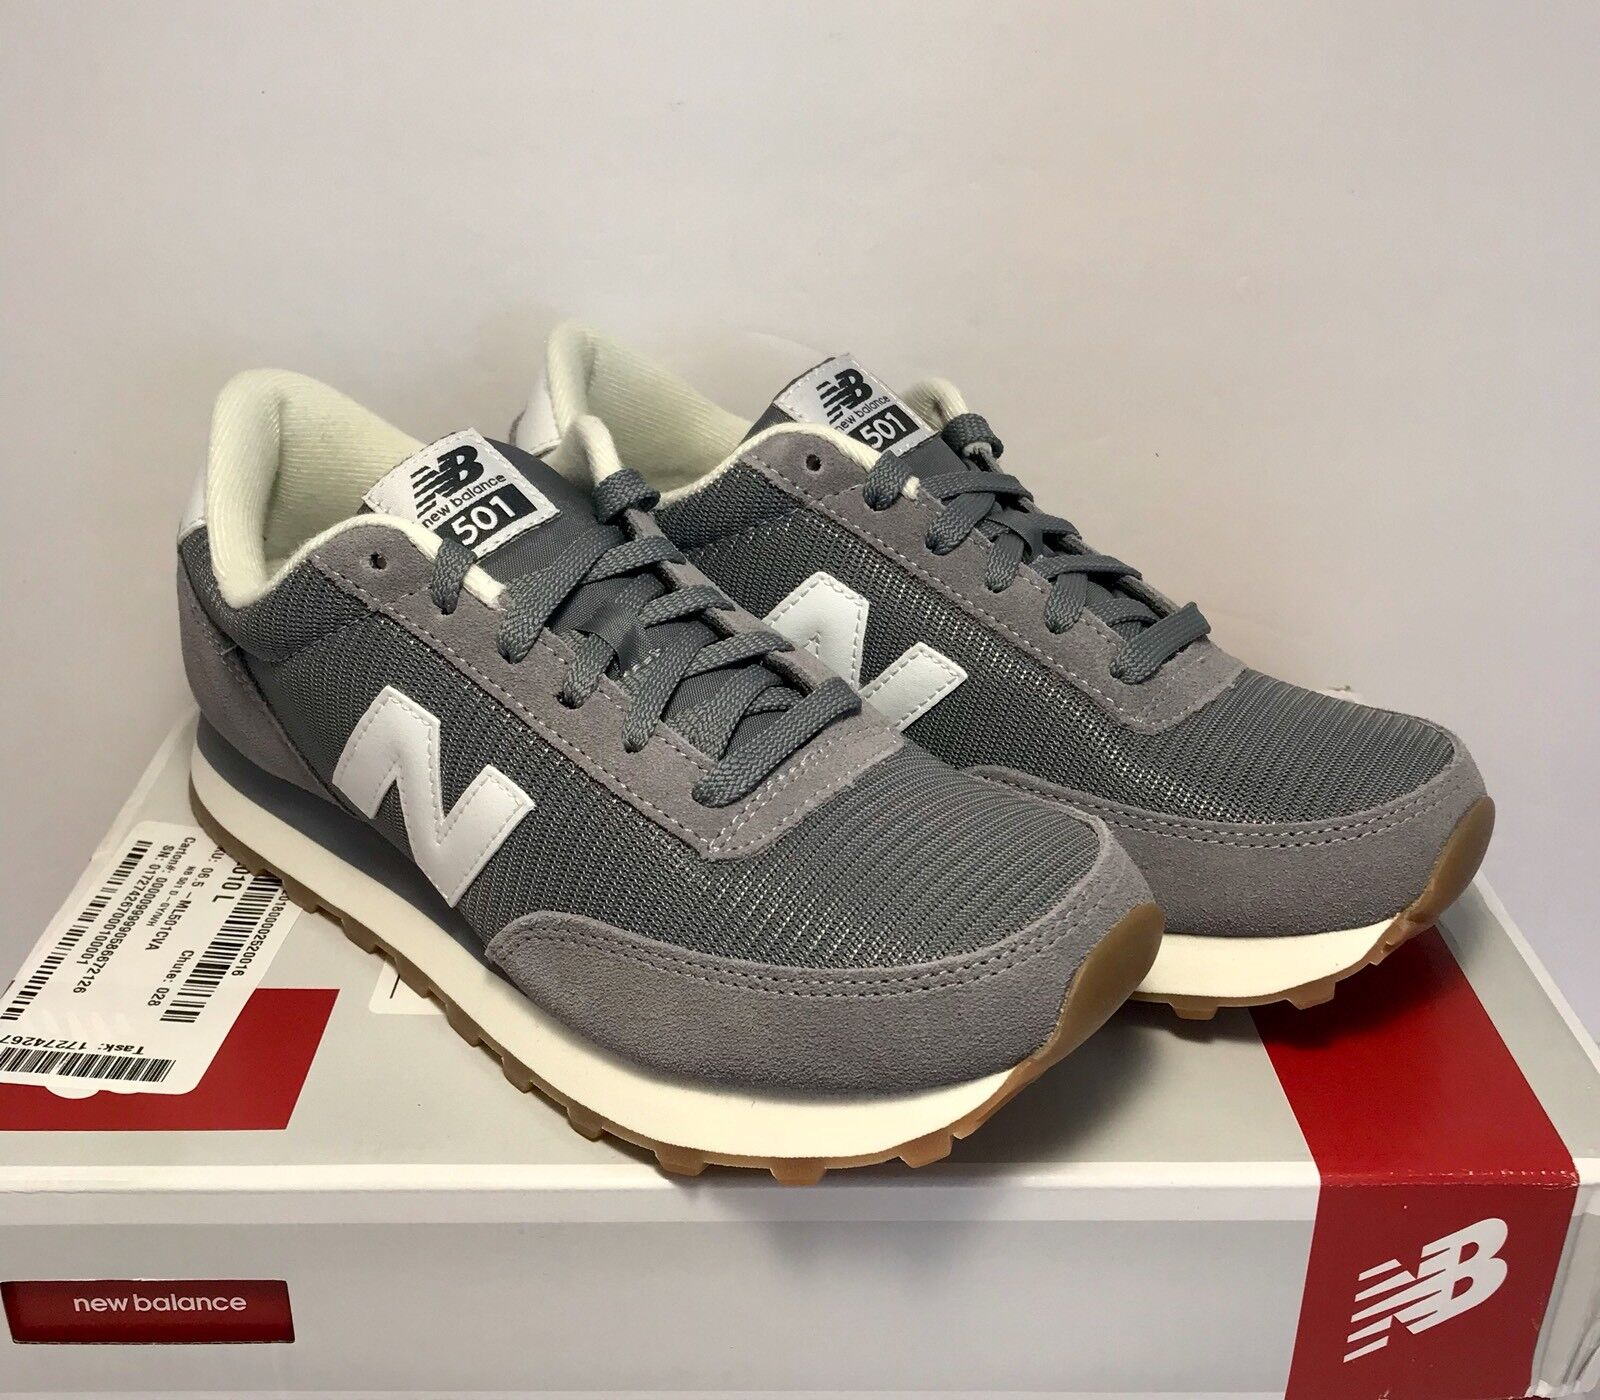 New Balance 501 Sneaker Mens Size 6.5 Athletic Sneaker 501 Running Shoes Grey White 0a4661